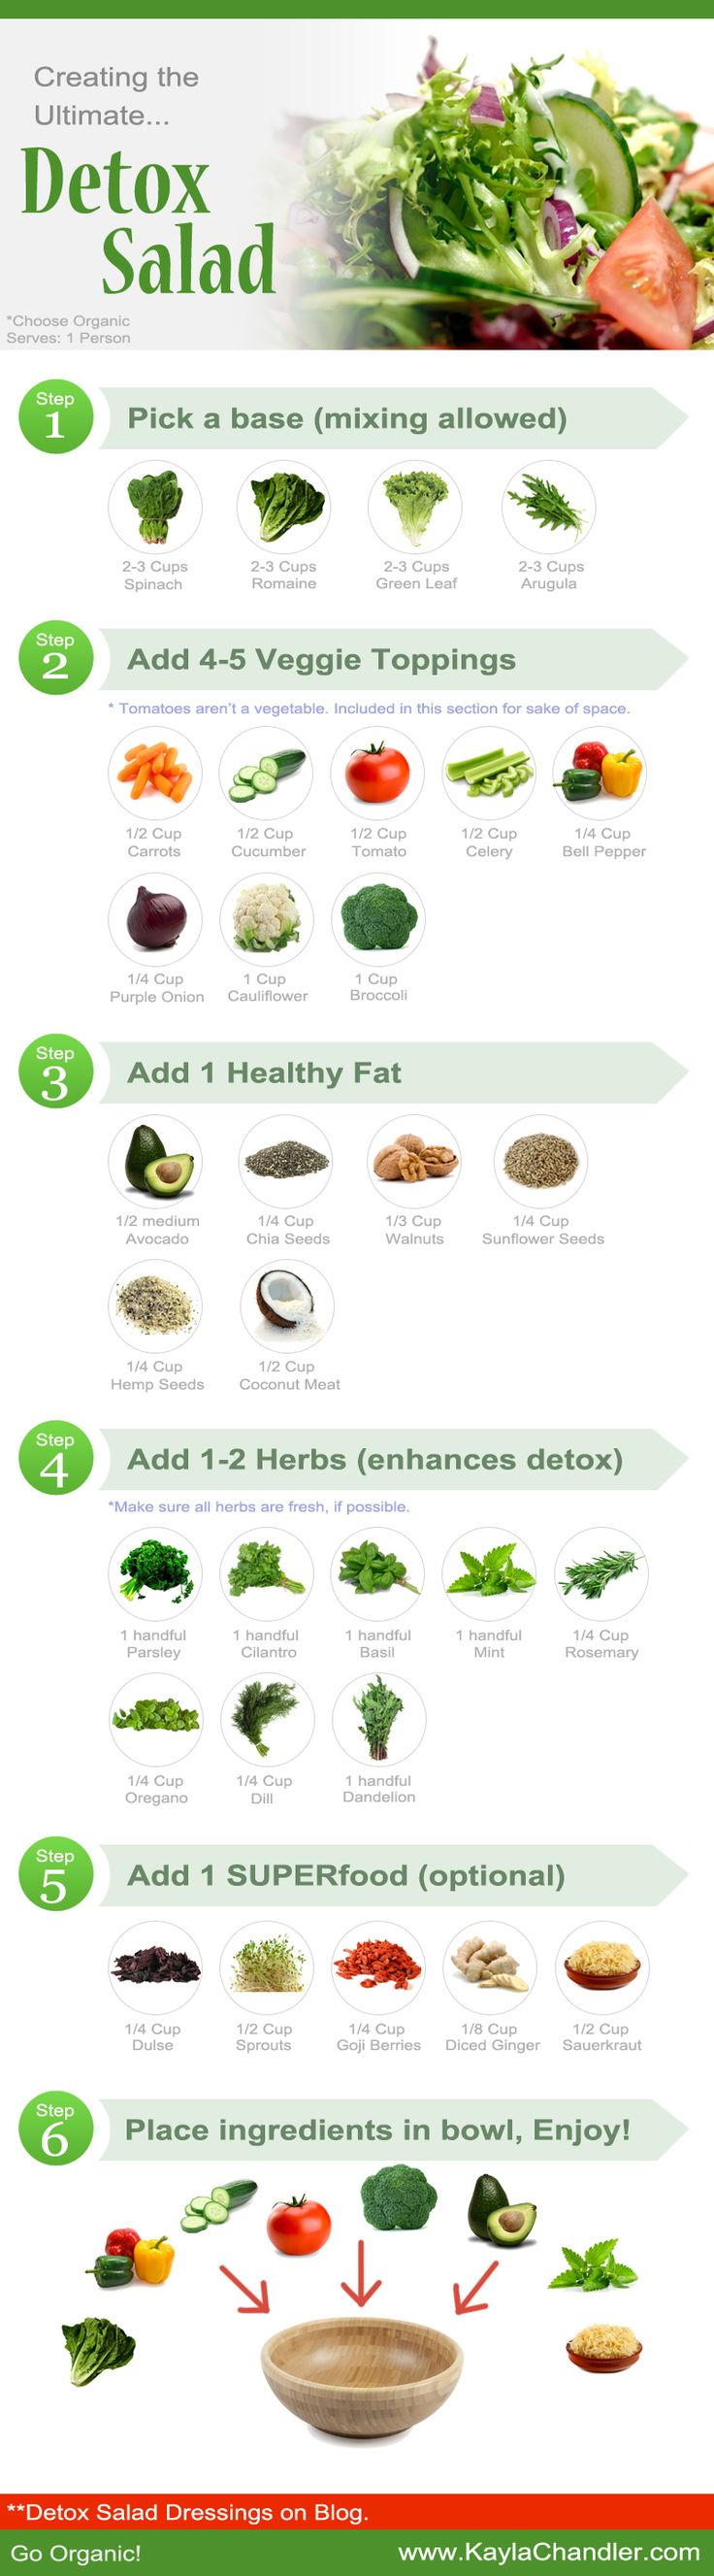 Creating the Ultimate Detox Salad (it is perfect)